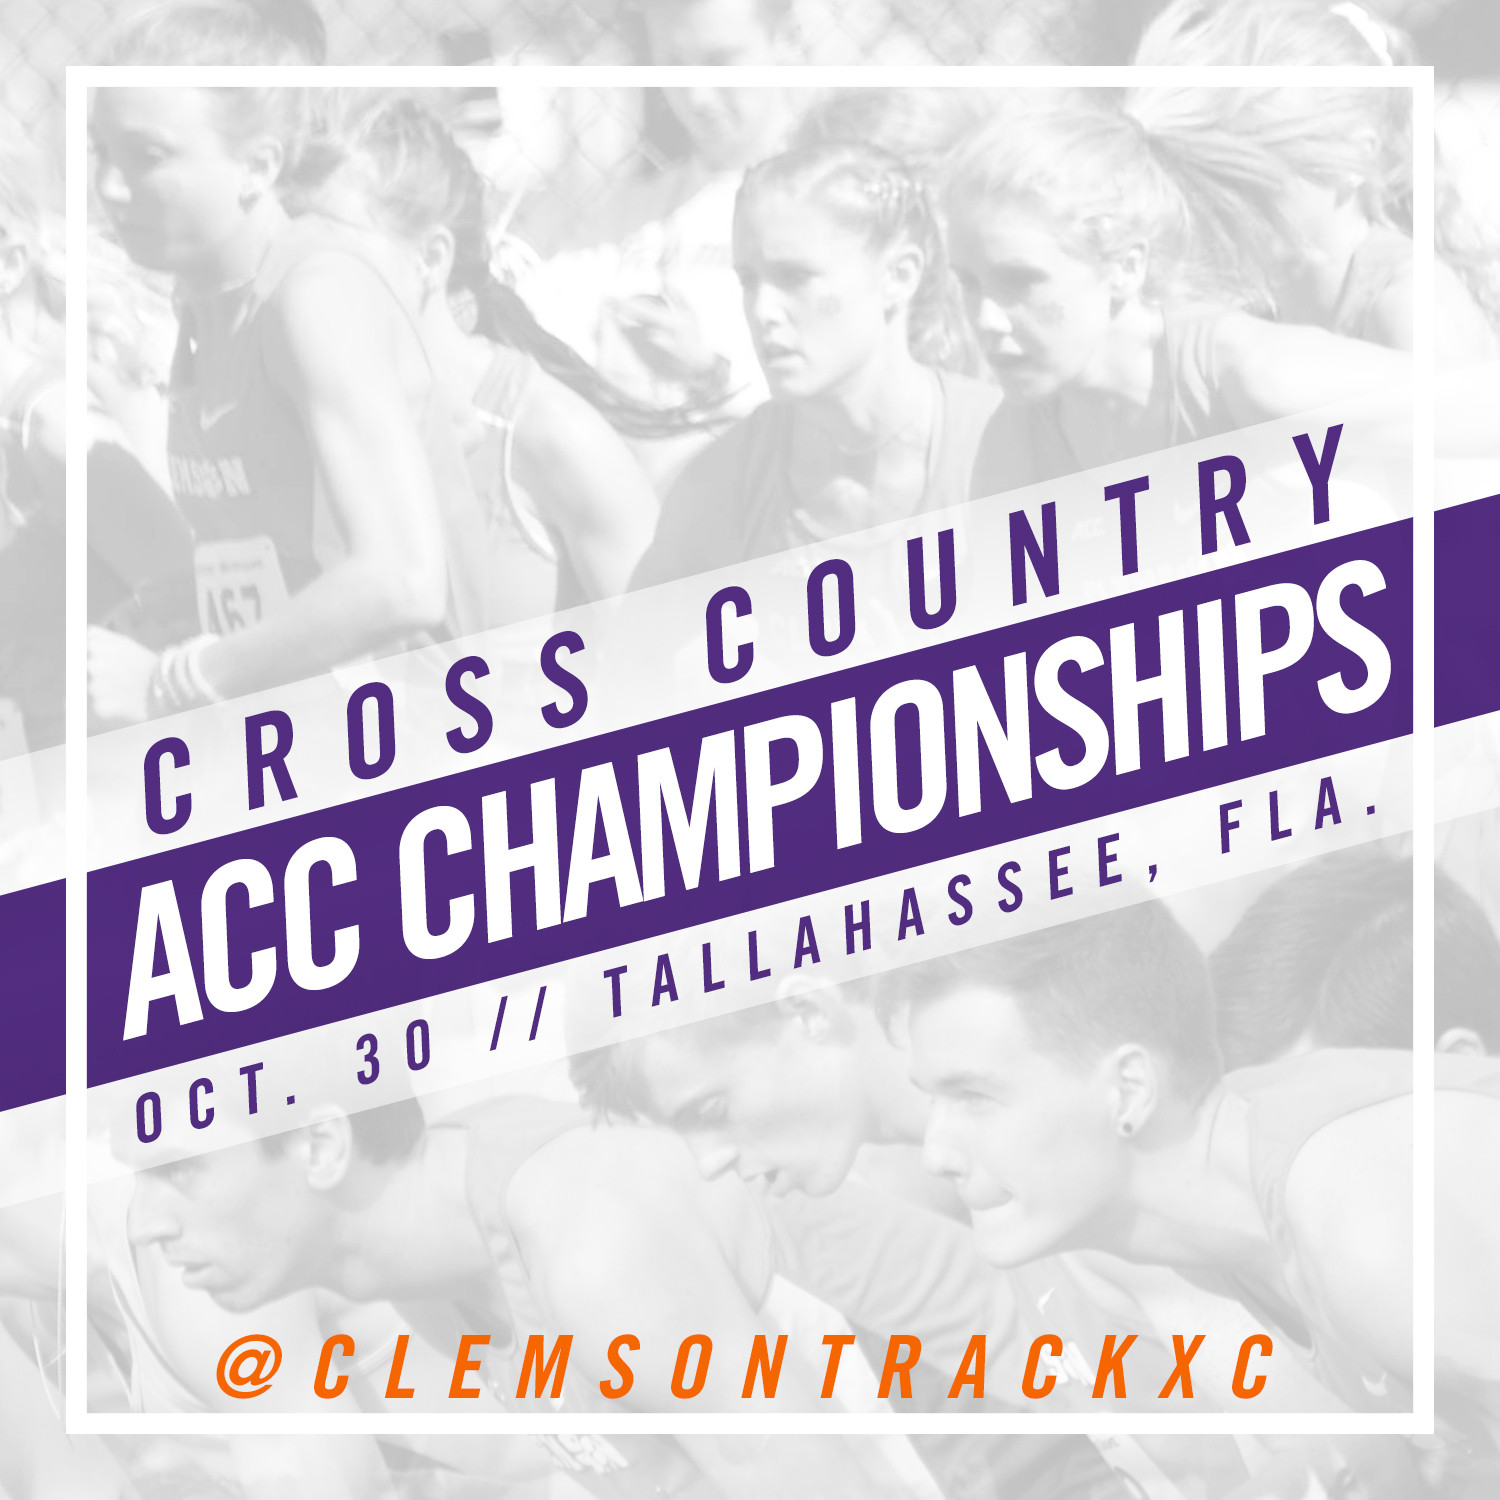 Clemson Takes On The ACC Championships